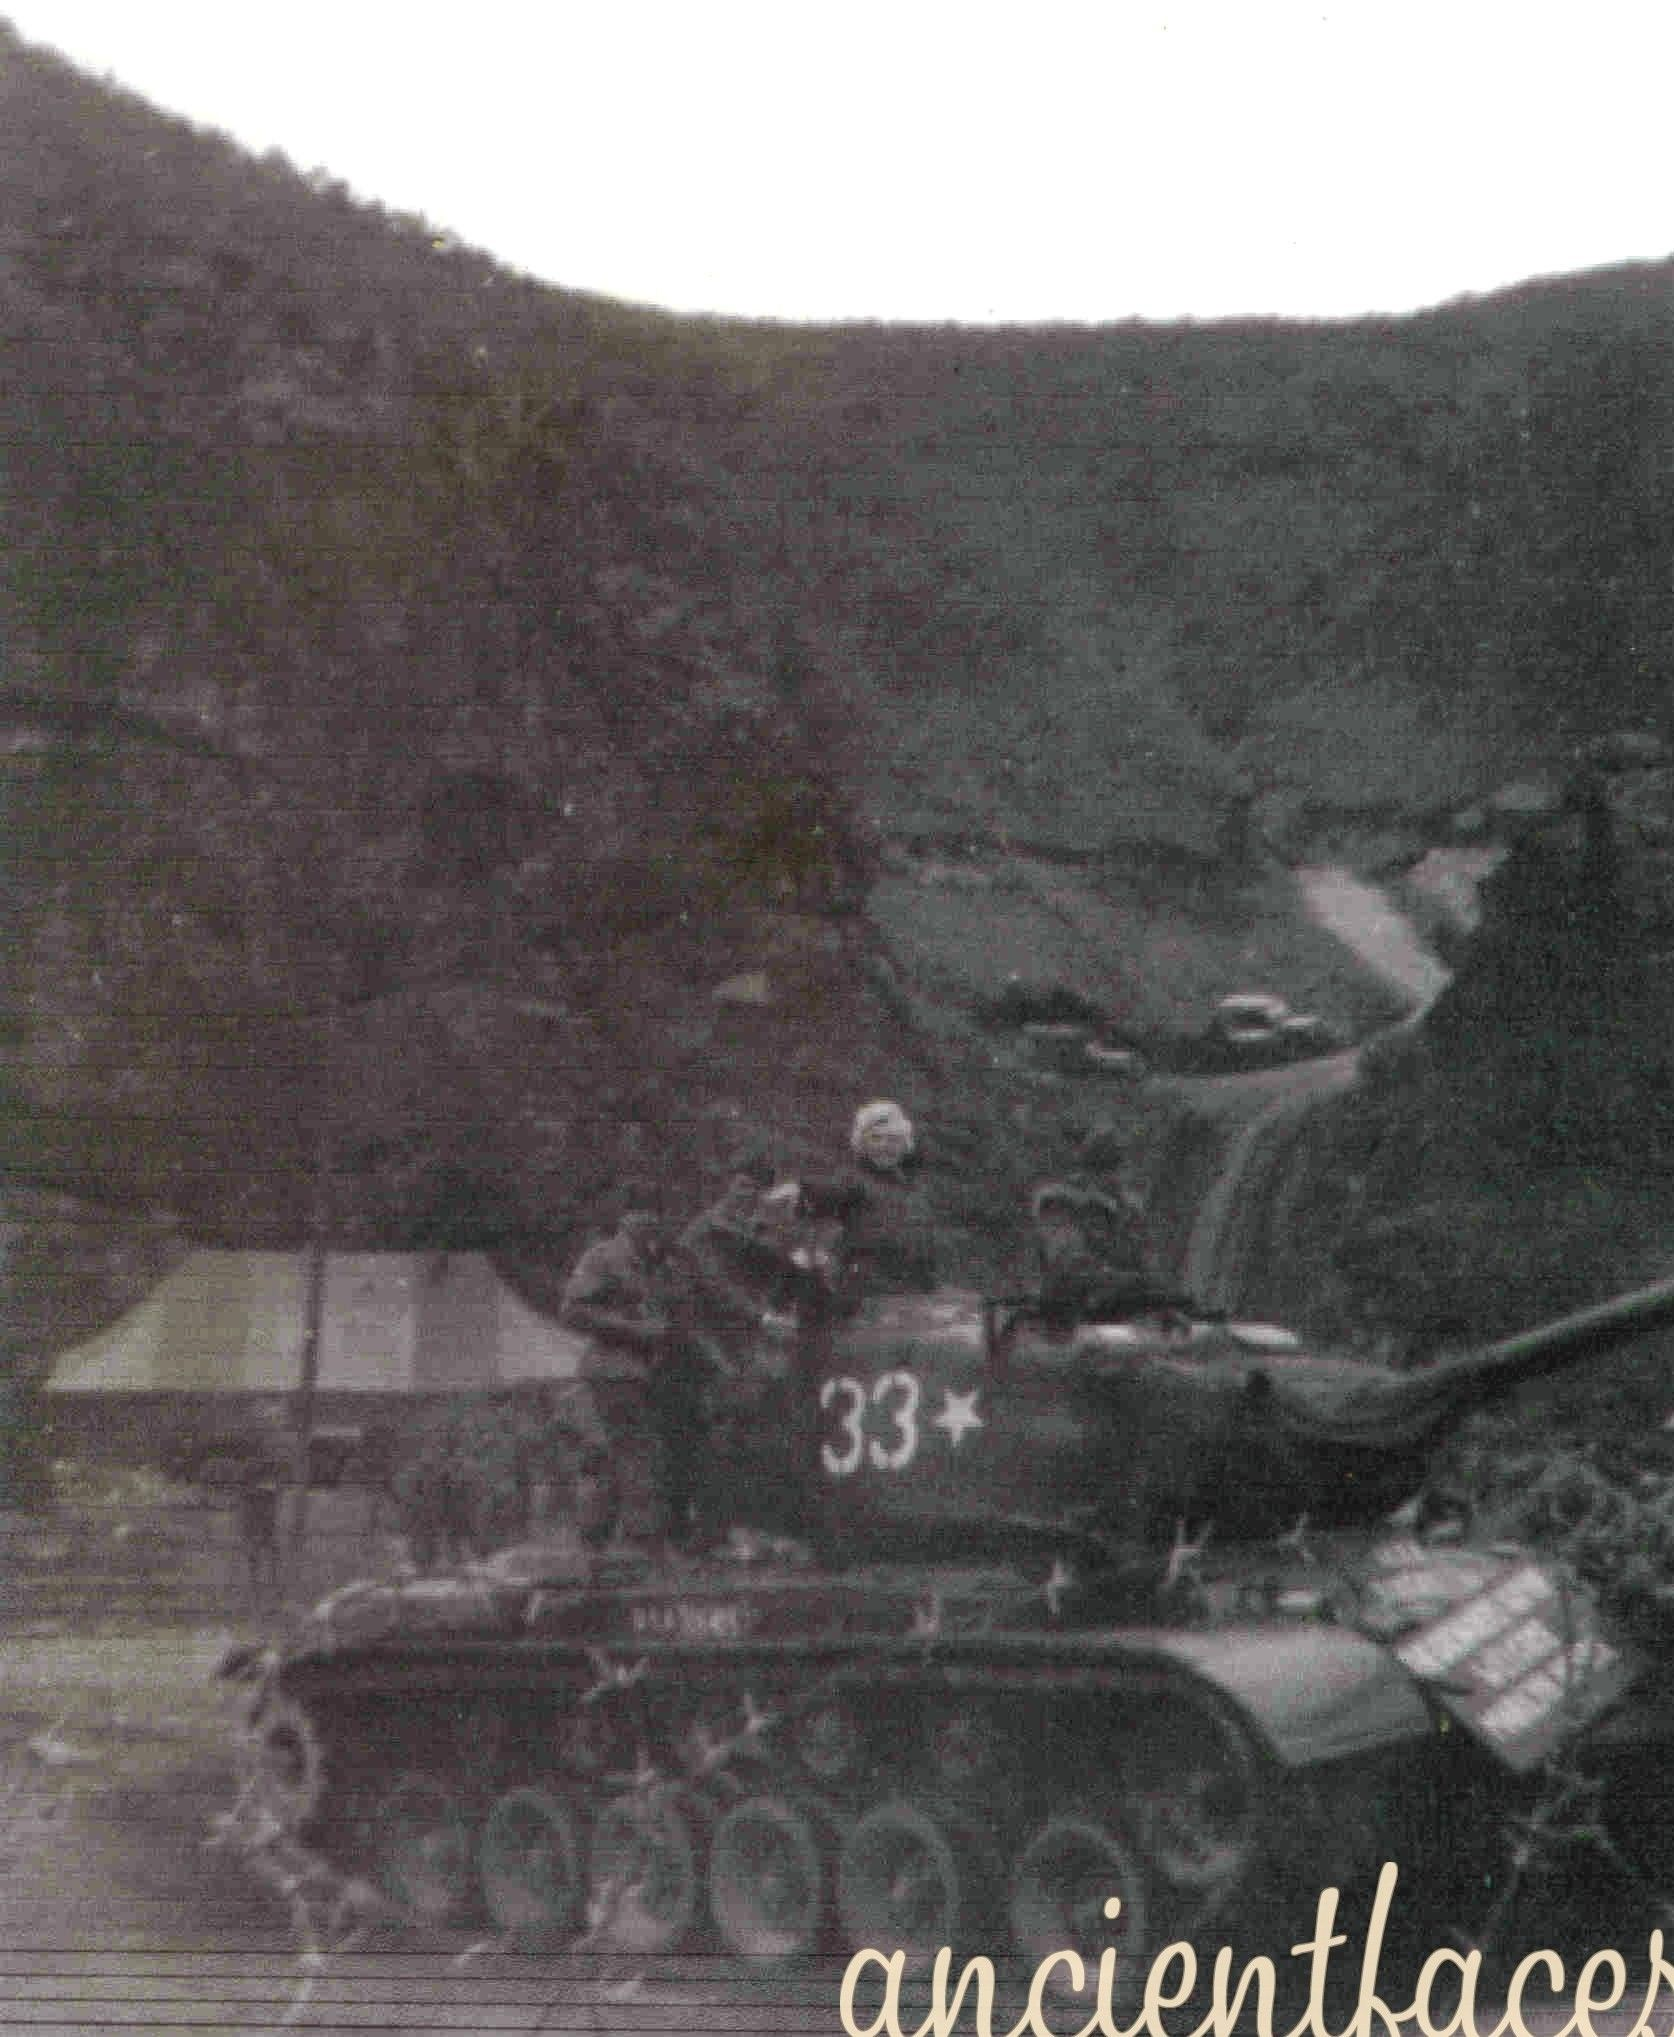 1954-02-17-korea-grenadier_palace-tank-023-1